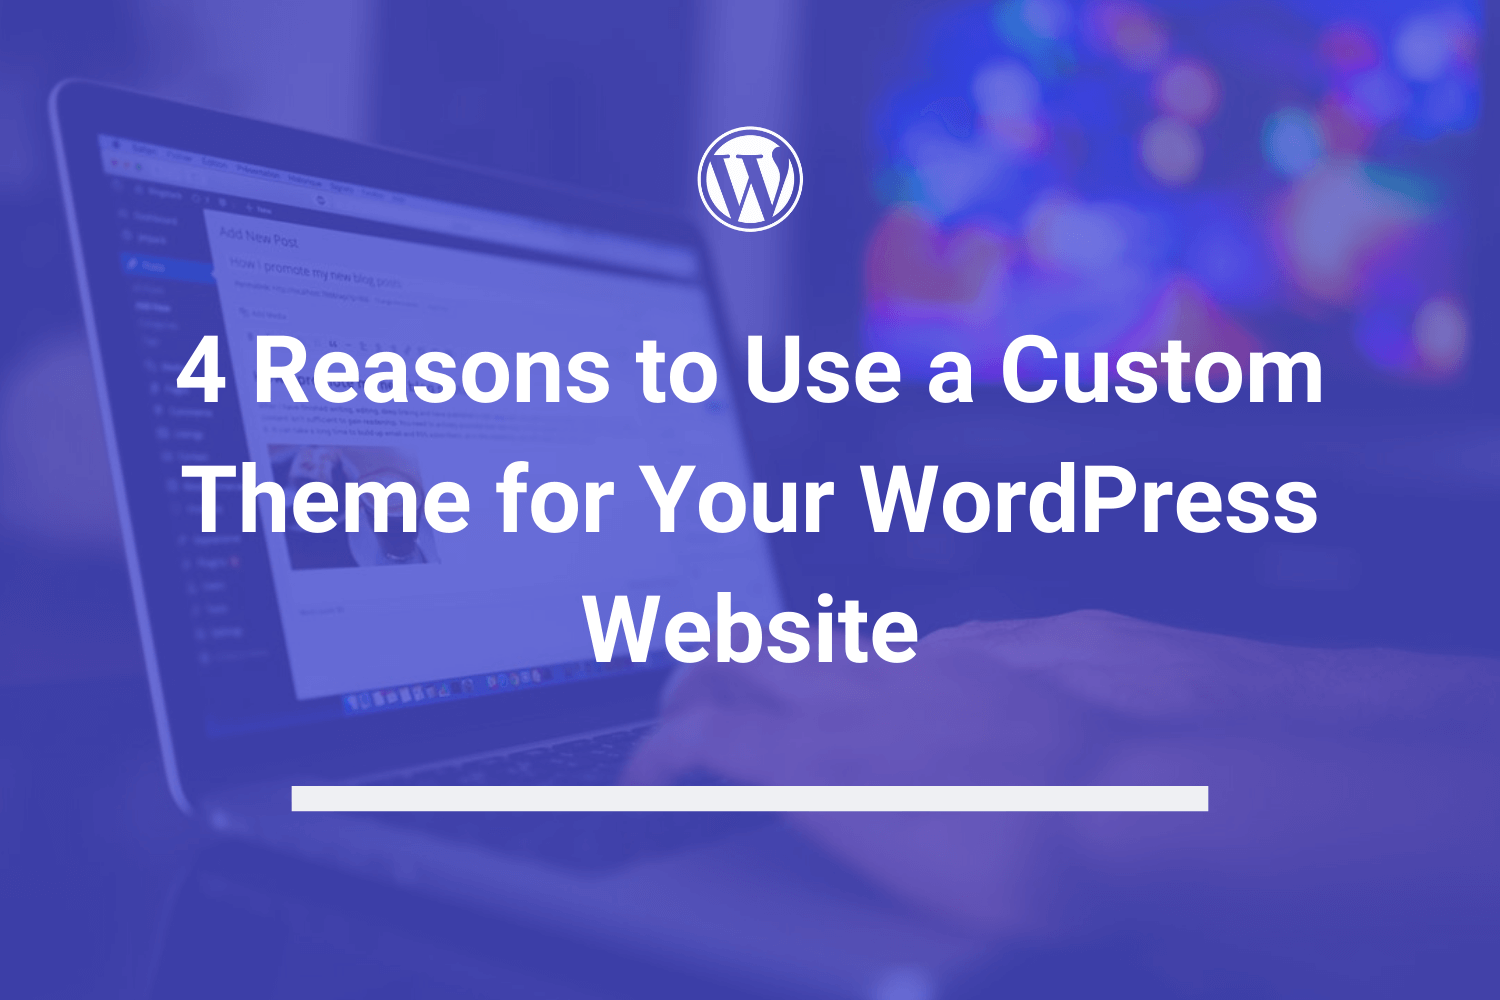 4 Reasons to Use a Custom Theme for Your WordPress Website – What to Know